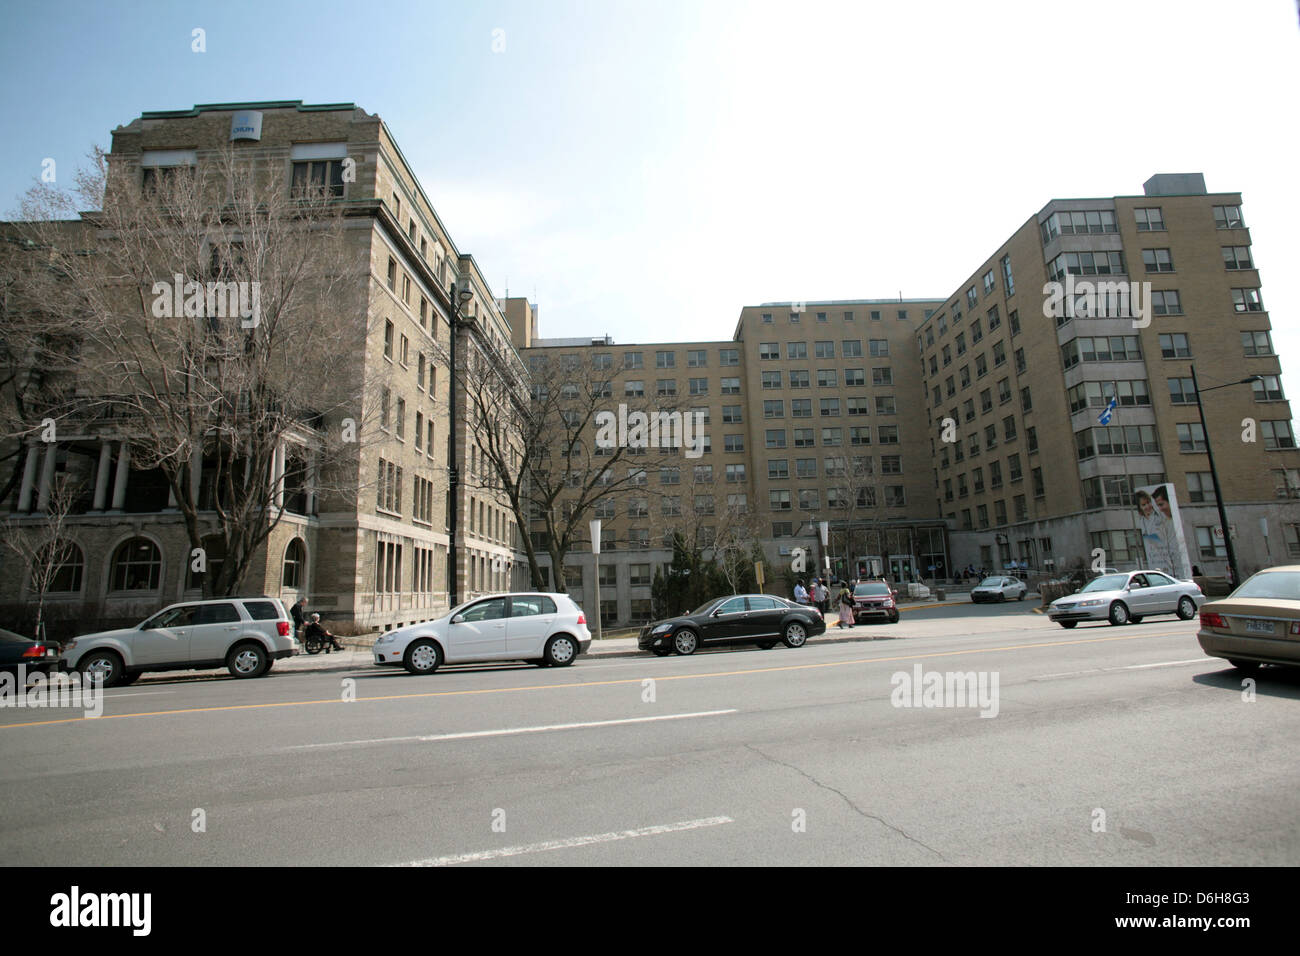 Montreal Chum Stock Photos & Montreal Chum Stock Images - Alamy